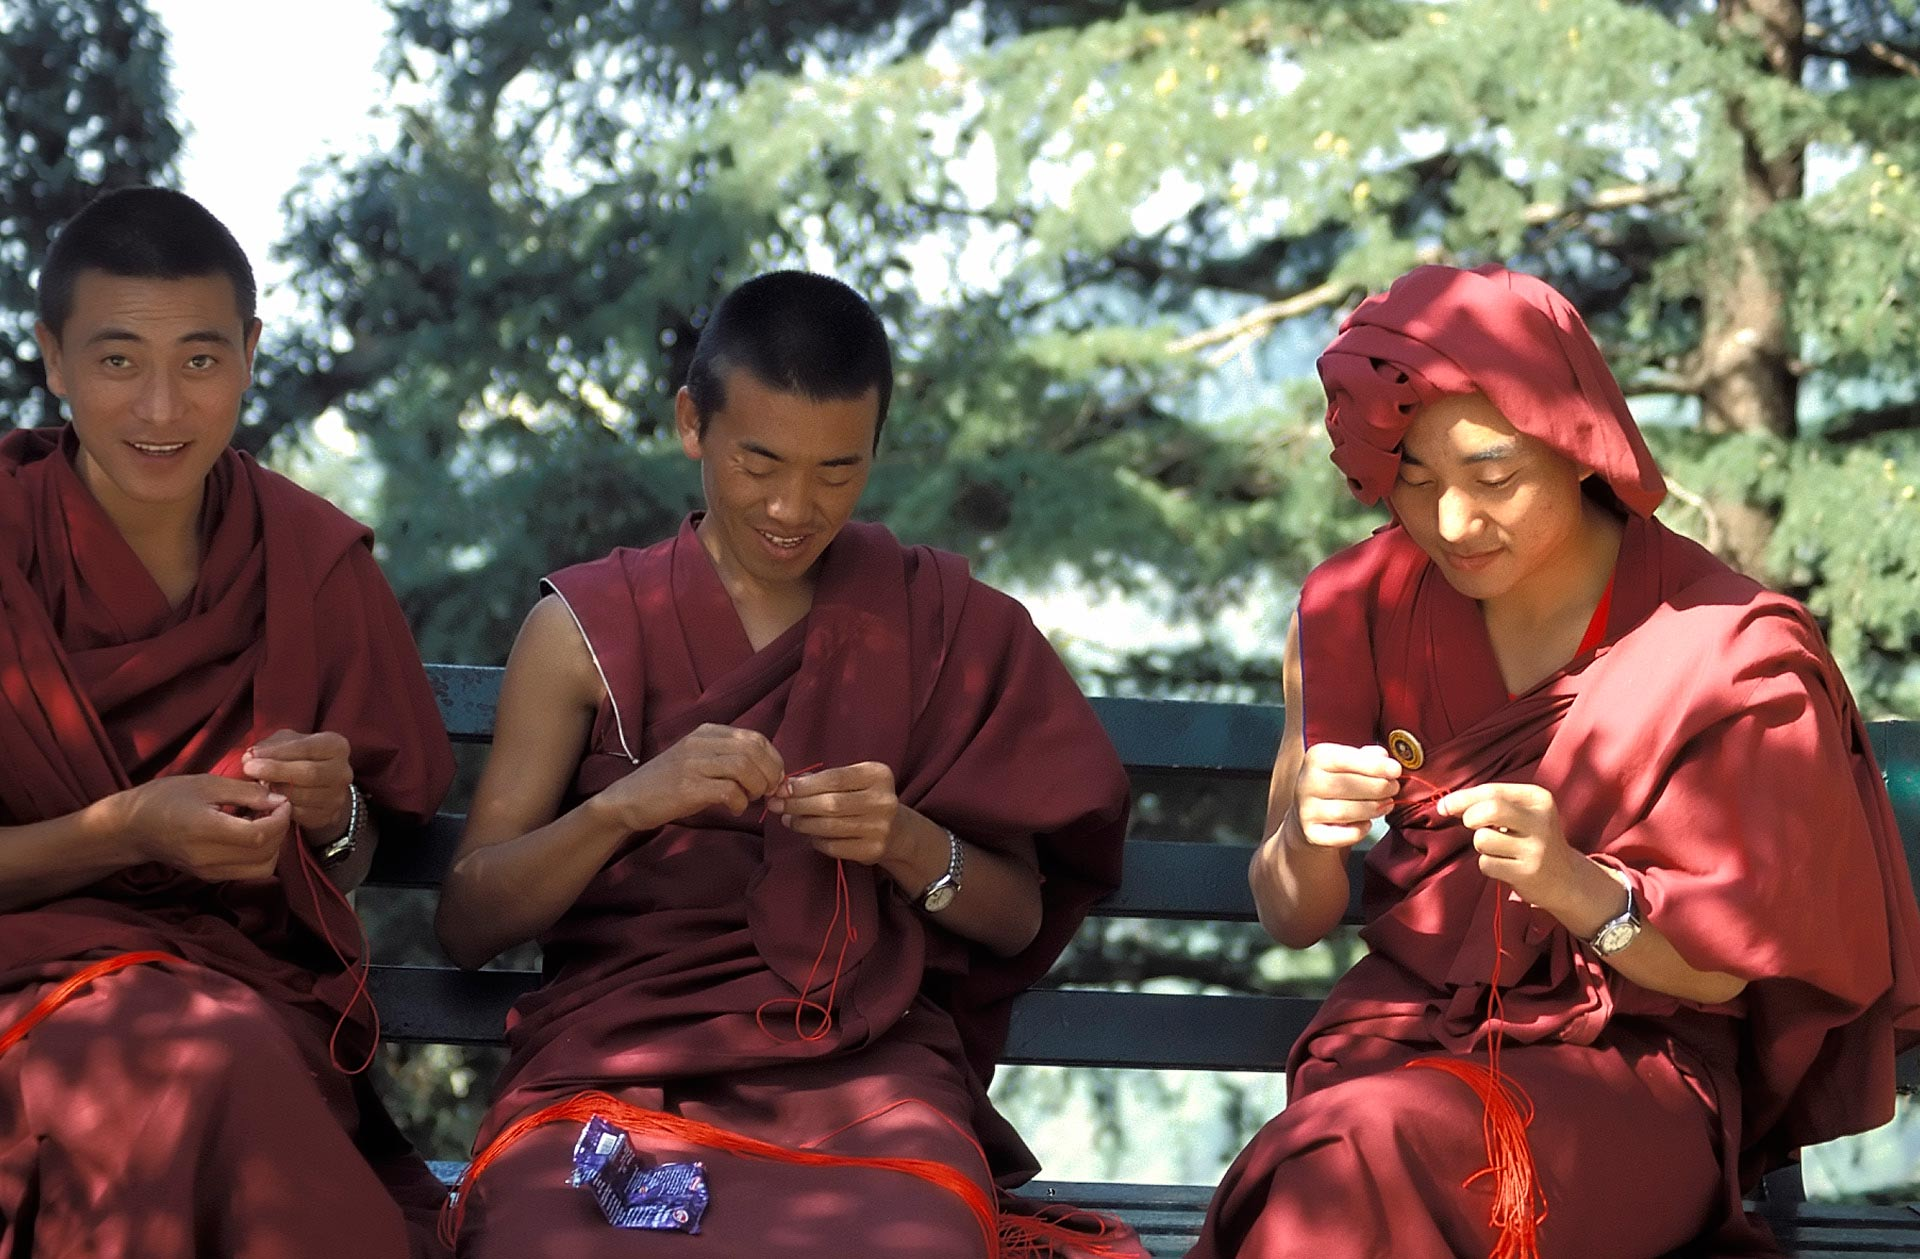 Buddhist Monks knitting, Dharamsala, Himachal Pradesh, India